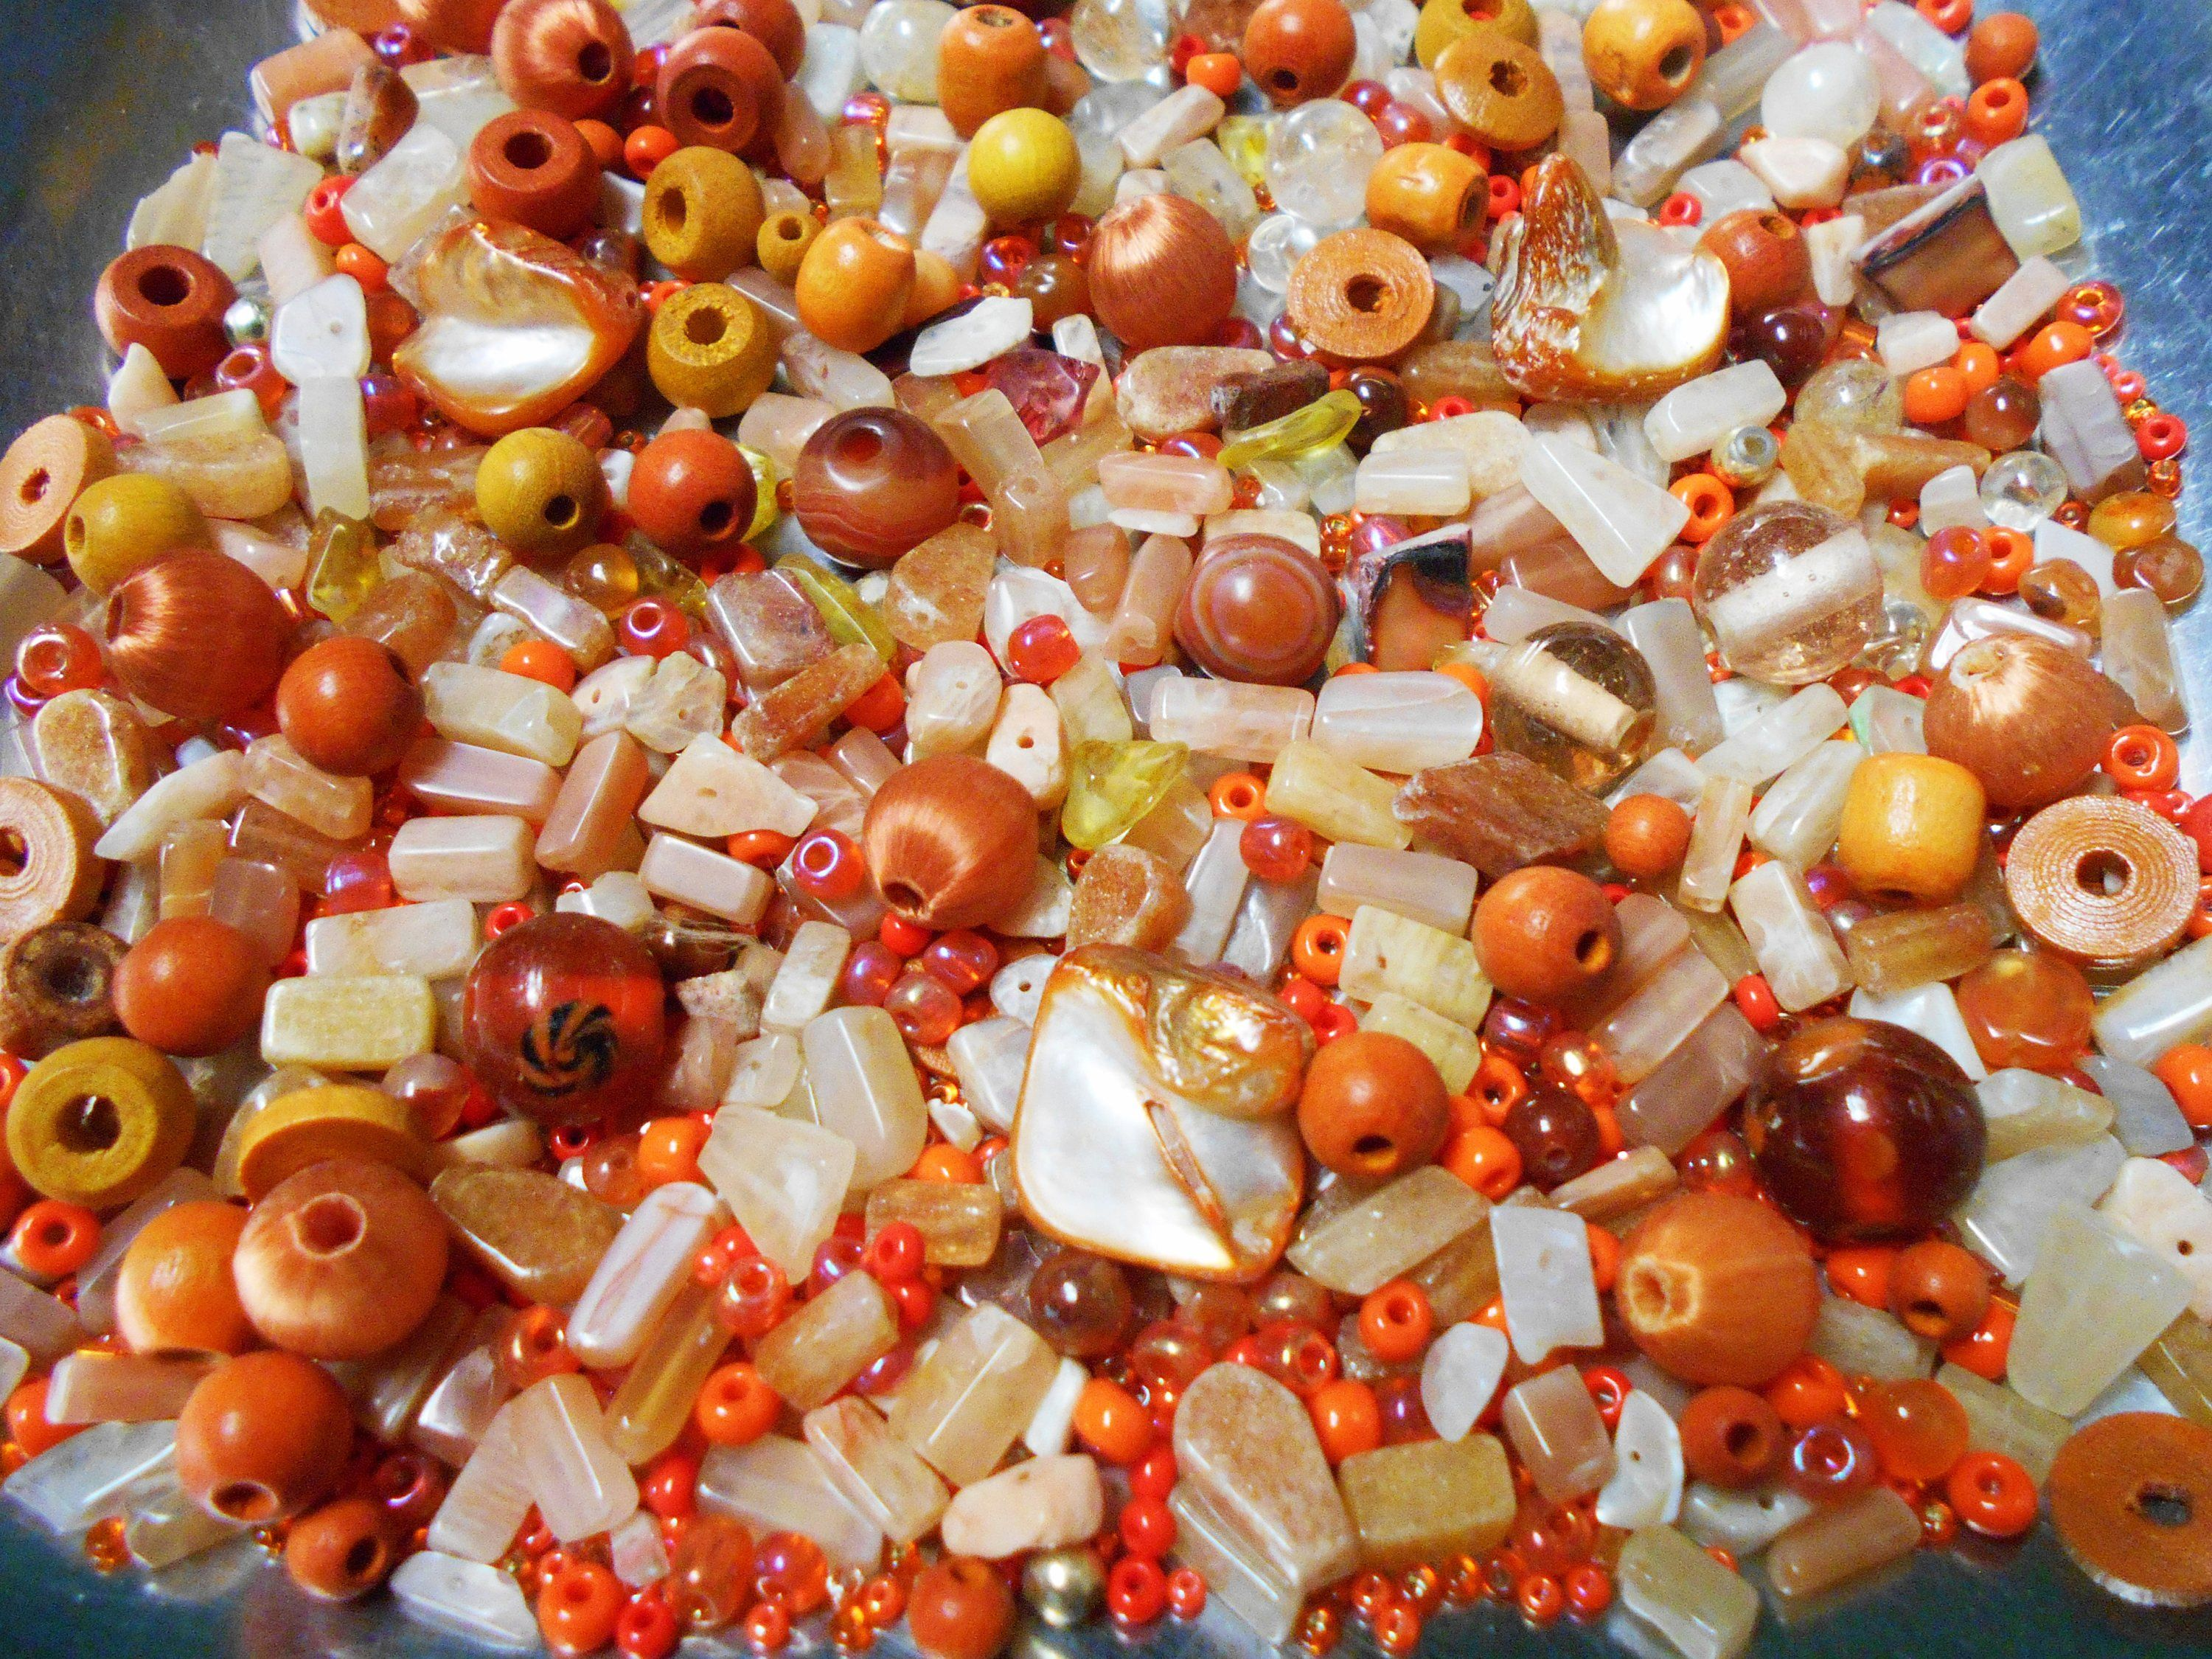 50 x Multi Coloured Spray Painted Glass Round Beads Size 8mm.